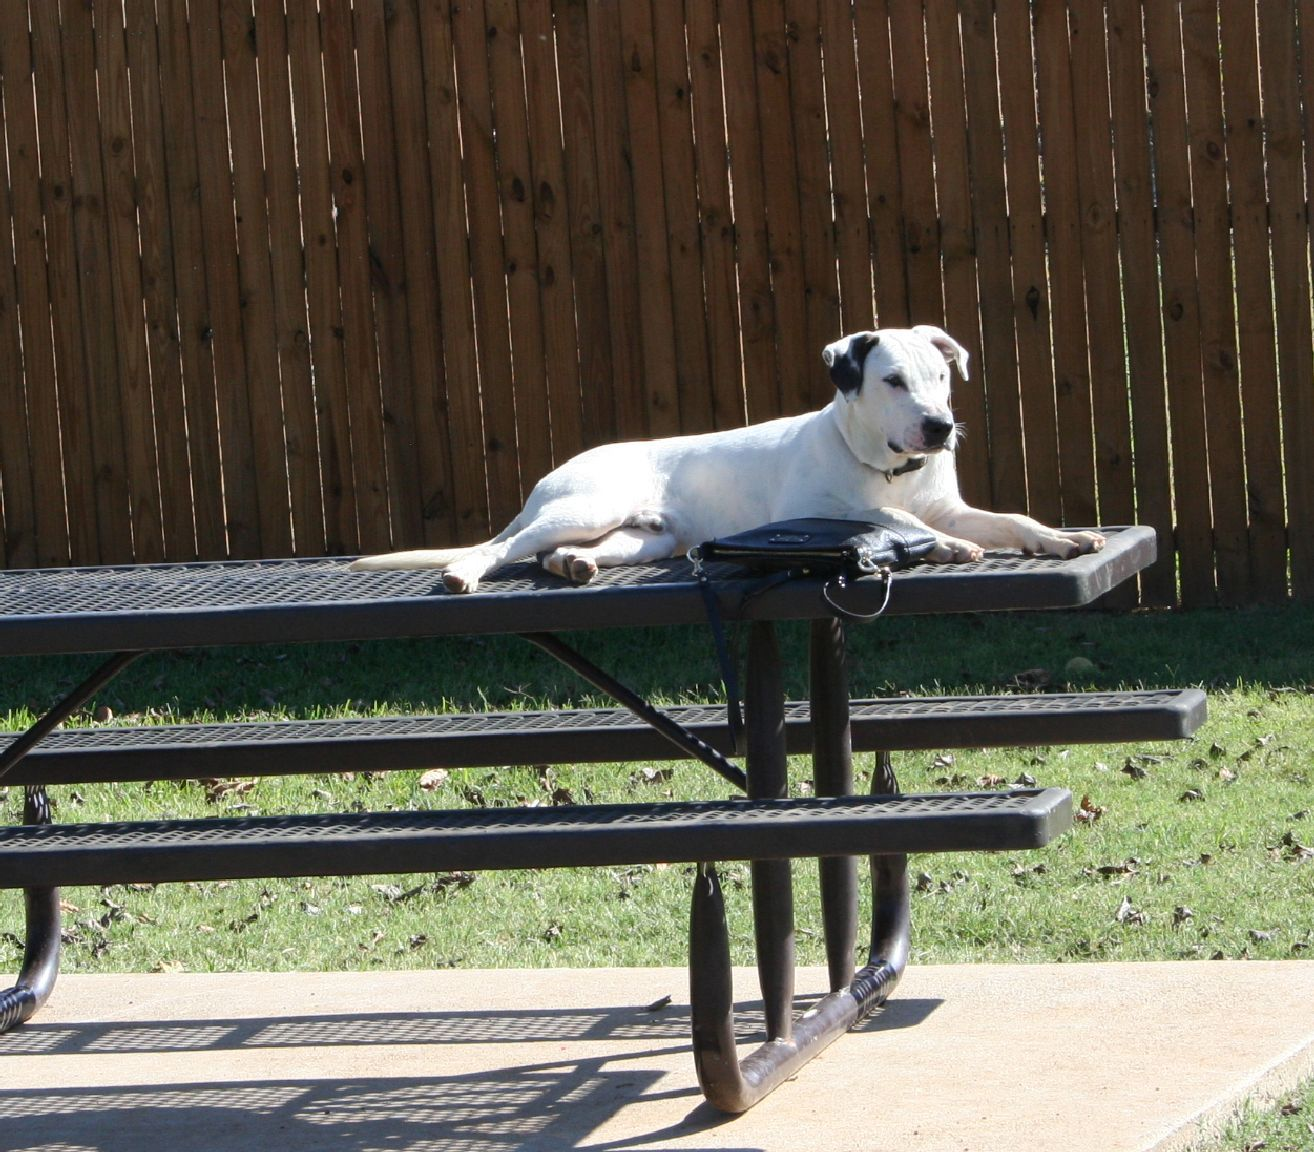 Dalmatian dog for Adoption in Euless, TX. ADN721305 on